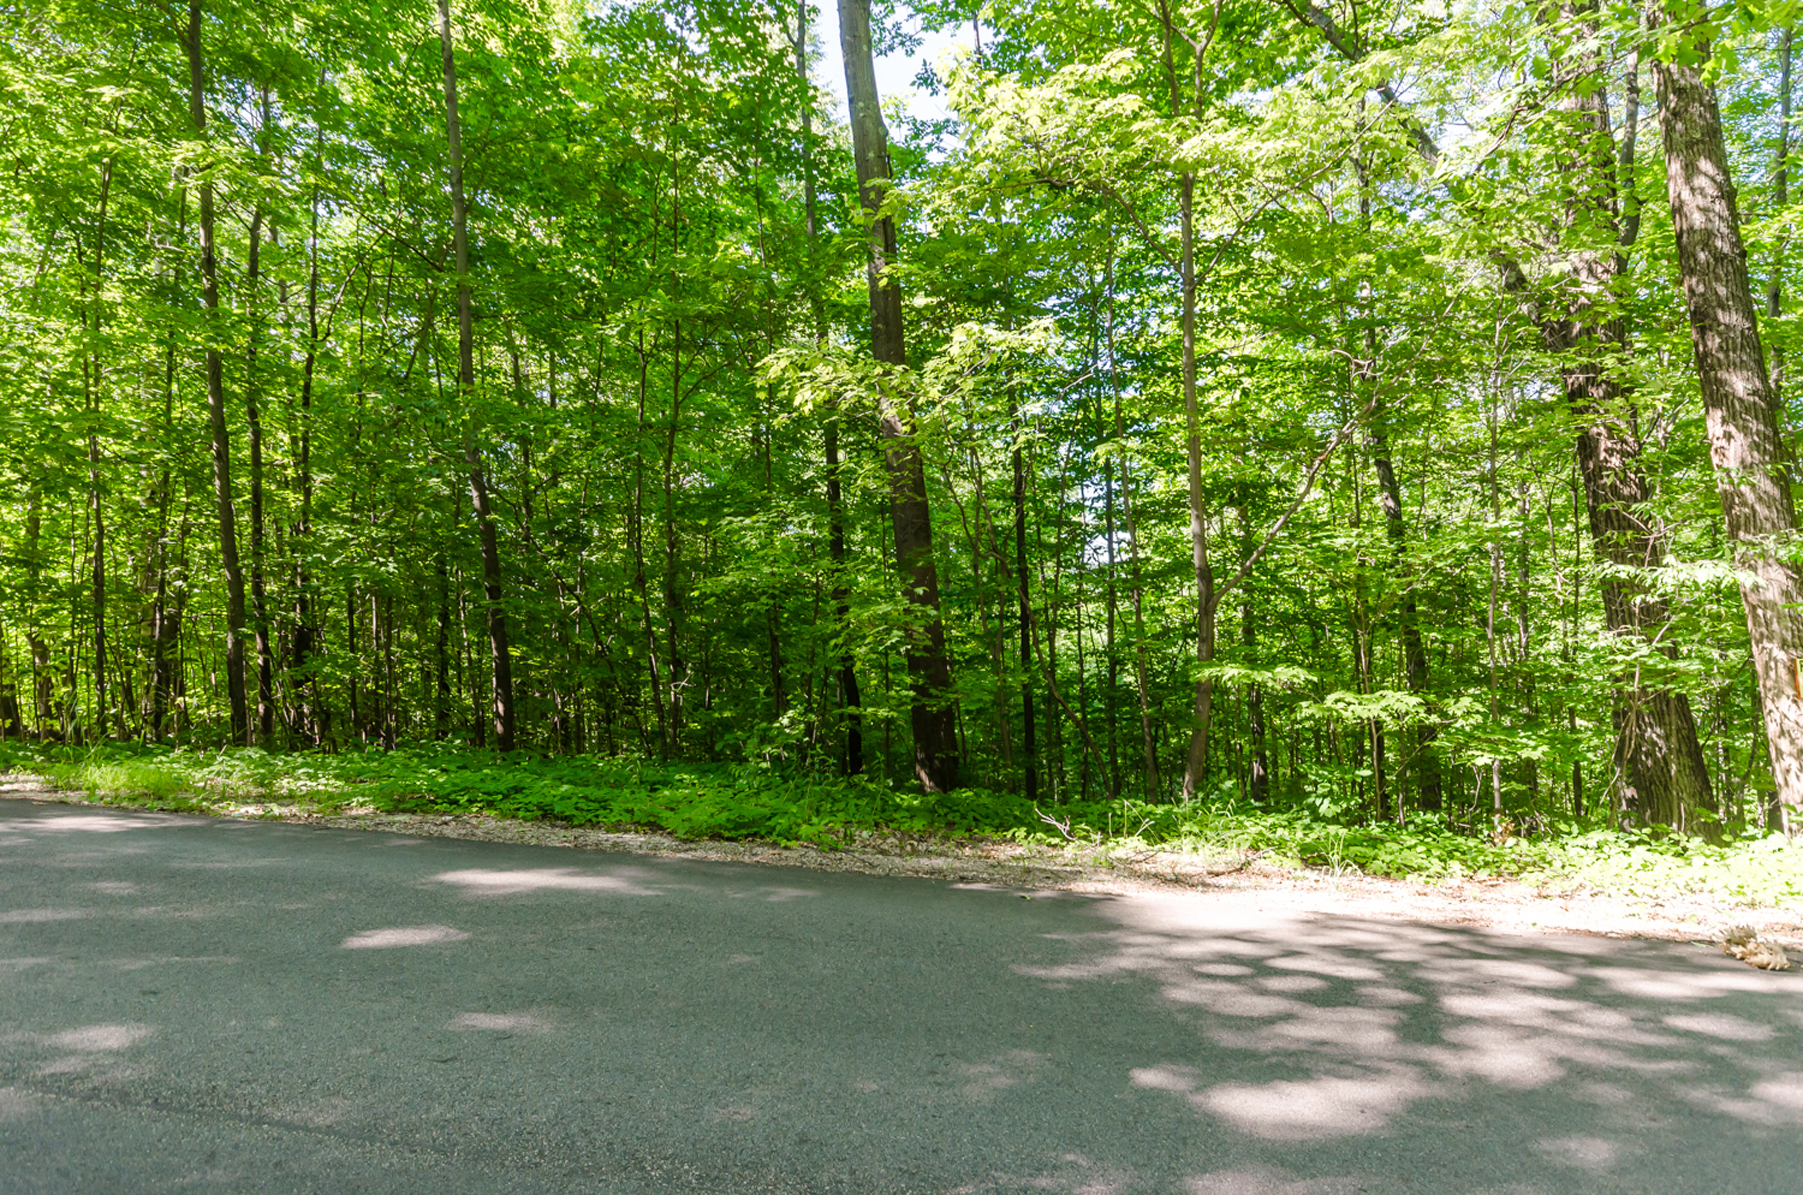 Земля для того Продажа на Lot 20 Mountain Road, Francestown Lot 20 Mountain Rd Francestown, Нью-Гэмпшир, 03043 Соединенные Штаты